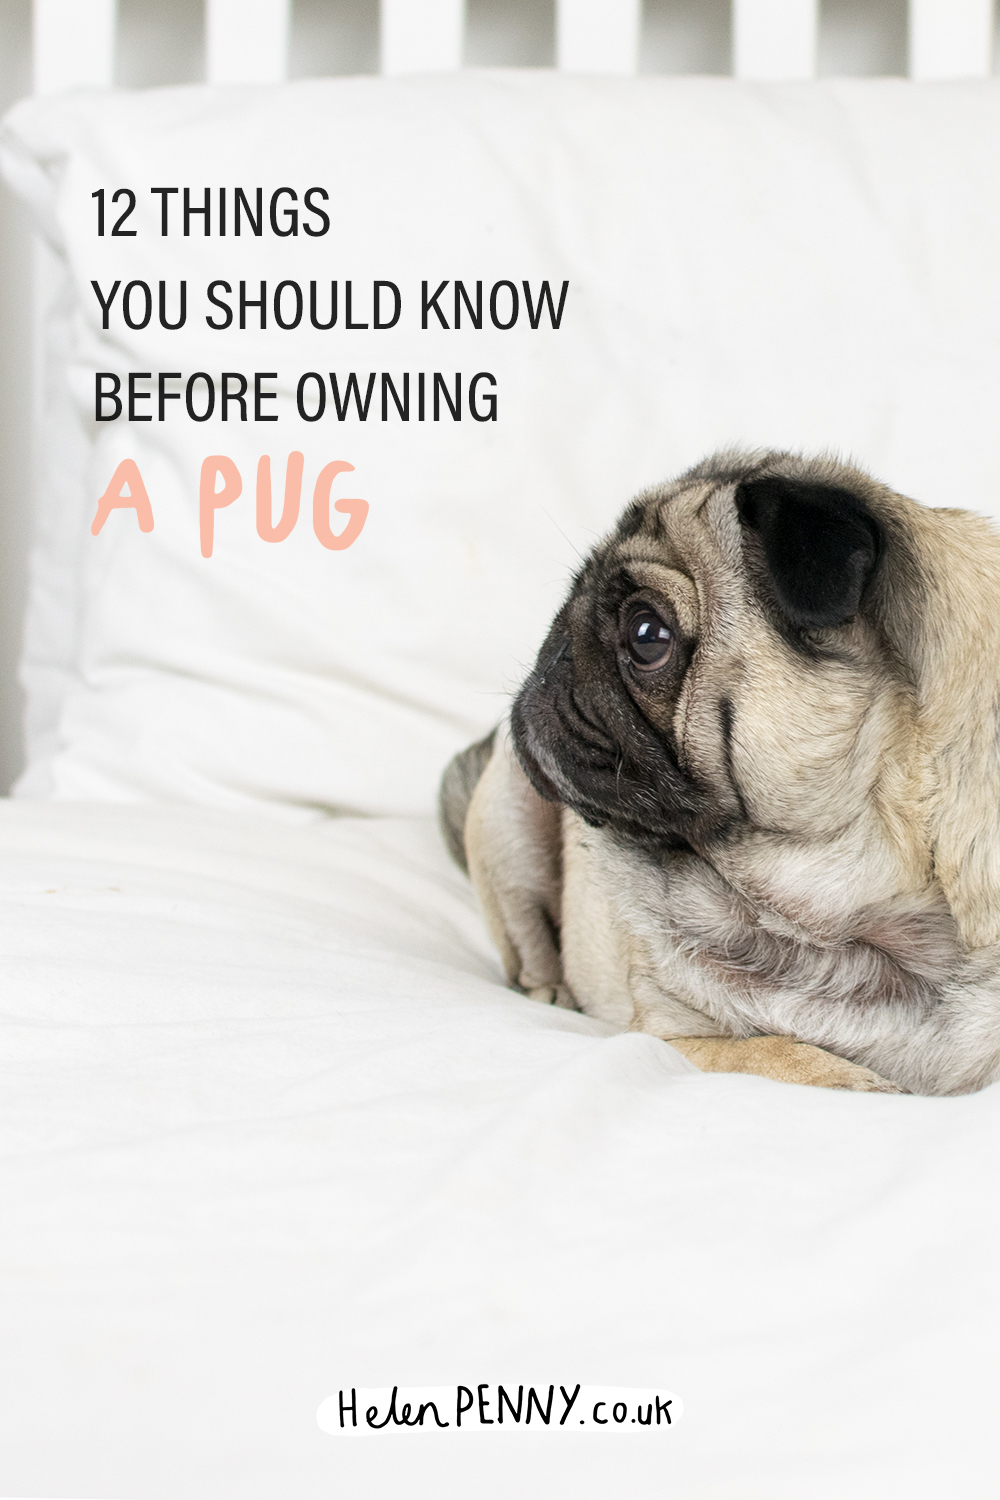 12 things you should know before owning a pug